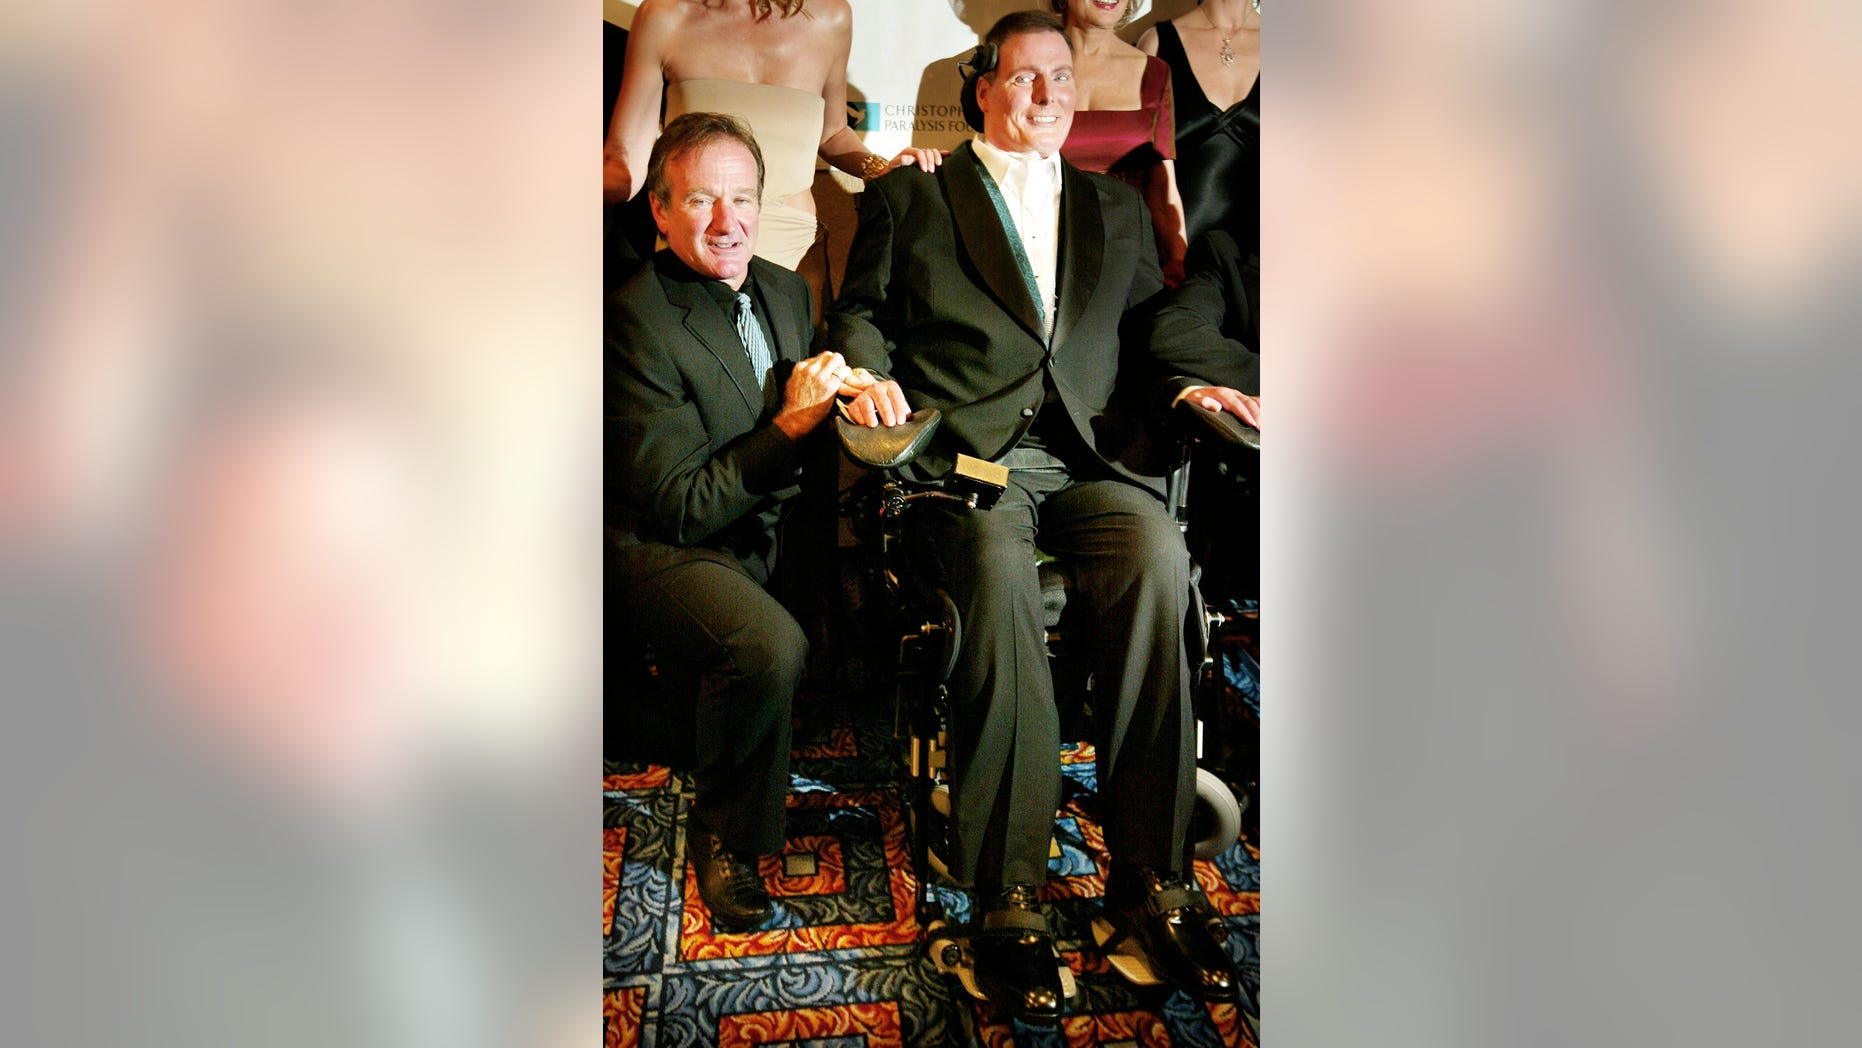 September 25, 2002. Actors Christopher Reeve (R) and Robin Williams pose for photographers as they arrive at party to celebrate Reeve's 50th birthday in New York City.